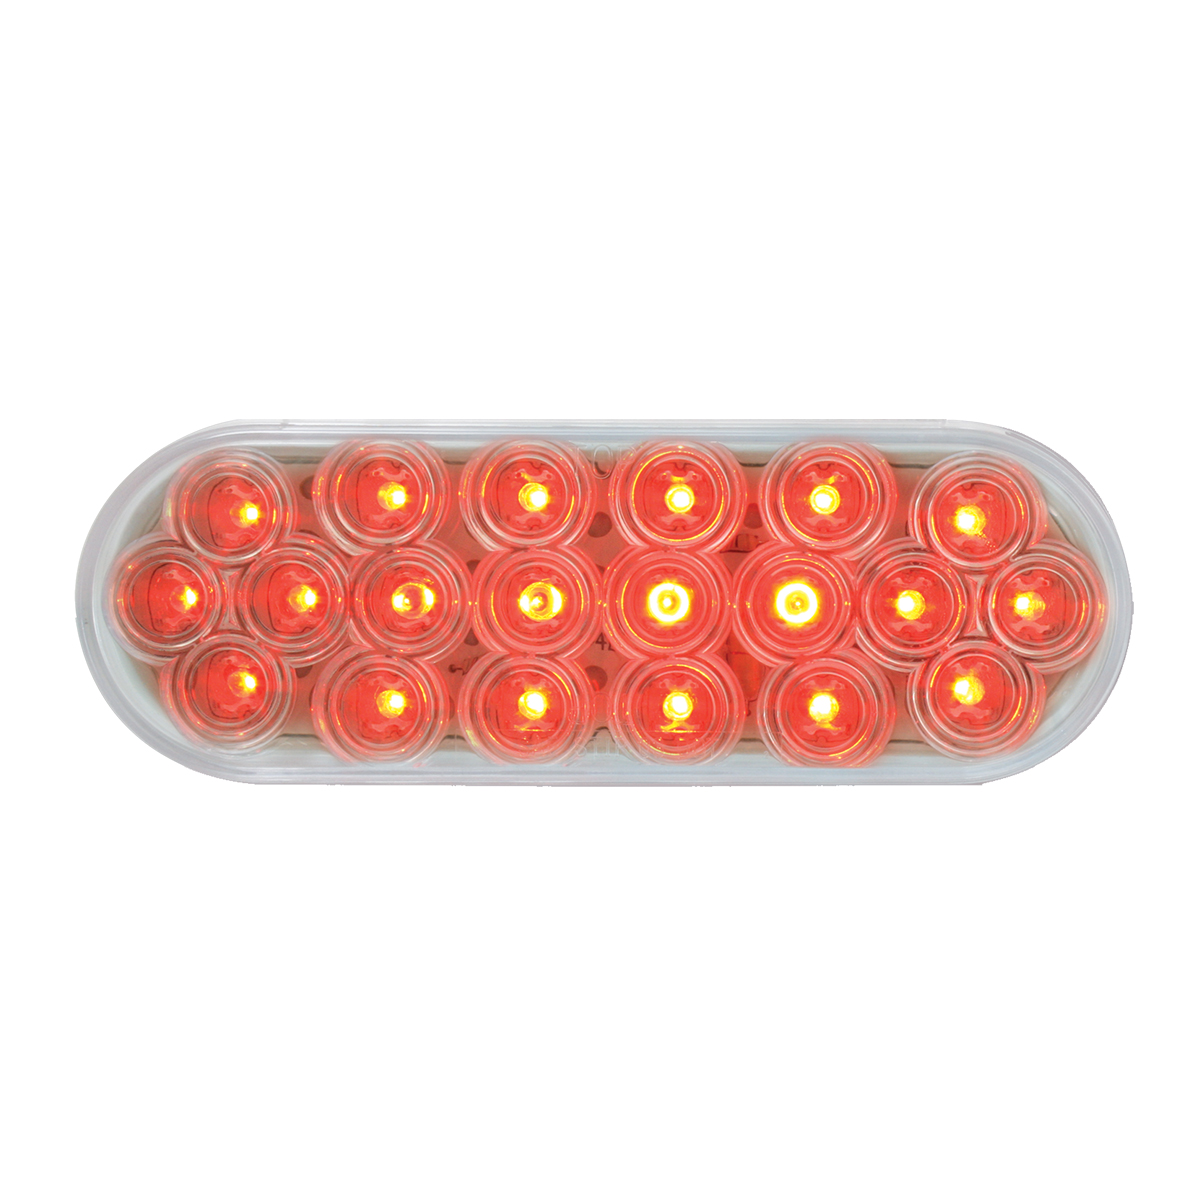 87729 Oval Fleet LED Light in Red/Clear